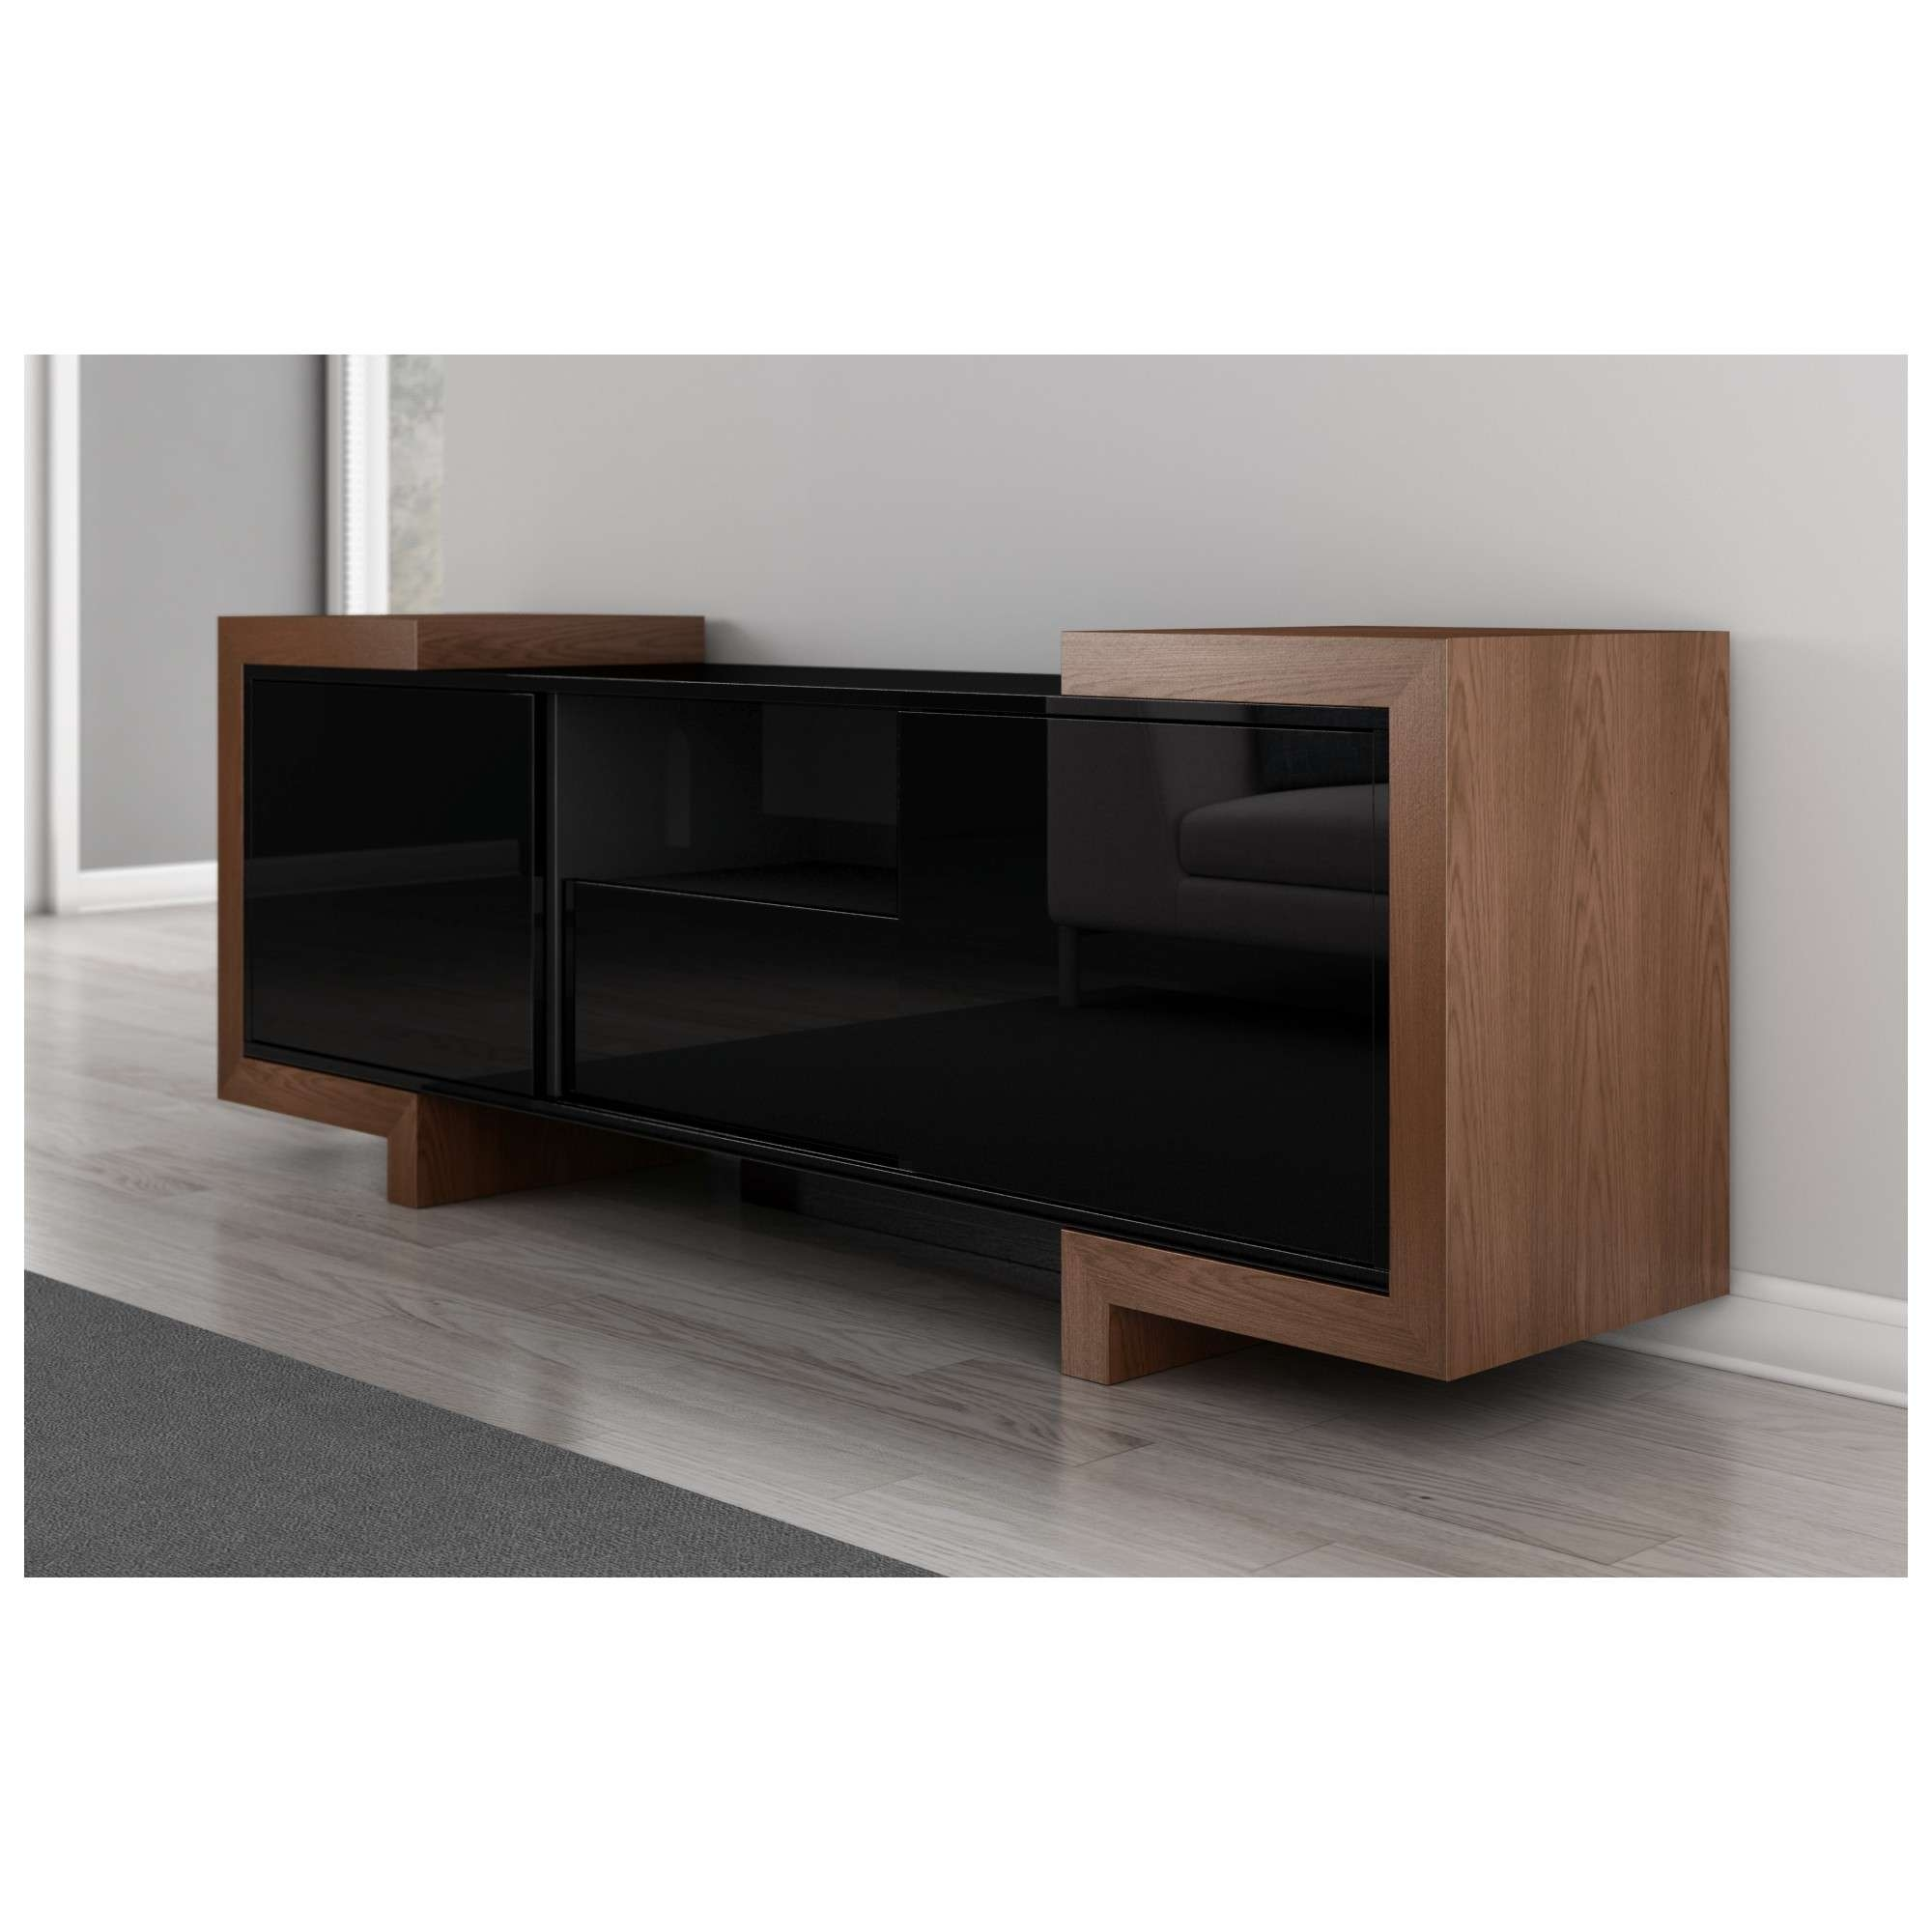 "Furnitech Ft75Fa 75"" Tv Stand Contemporary Media Cabinet In High Inside Contemporary Oak Tv Stands (View 4 of 15)"